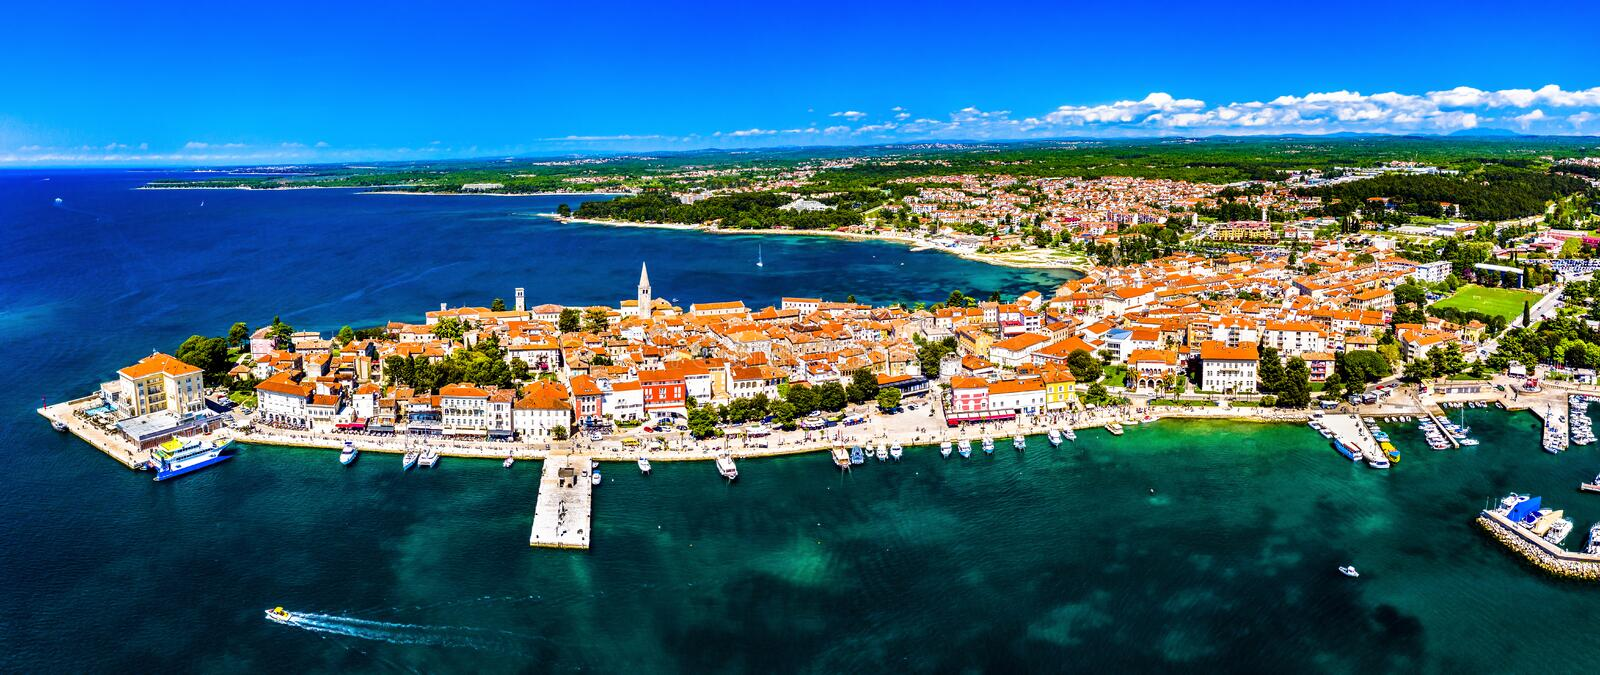 Aerial view of the old town of Porec in Croatia. Aerial view of the old town of Porec on a peninsula in Croatia stock photos